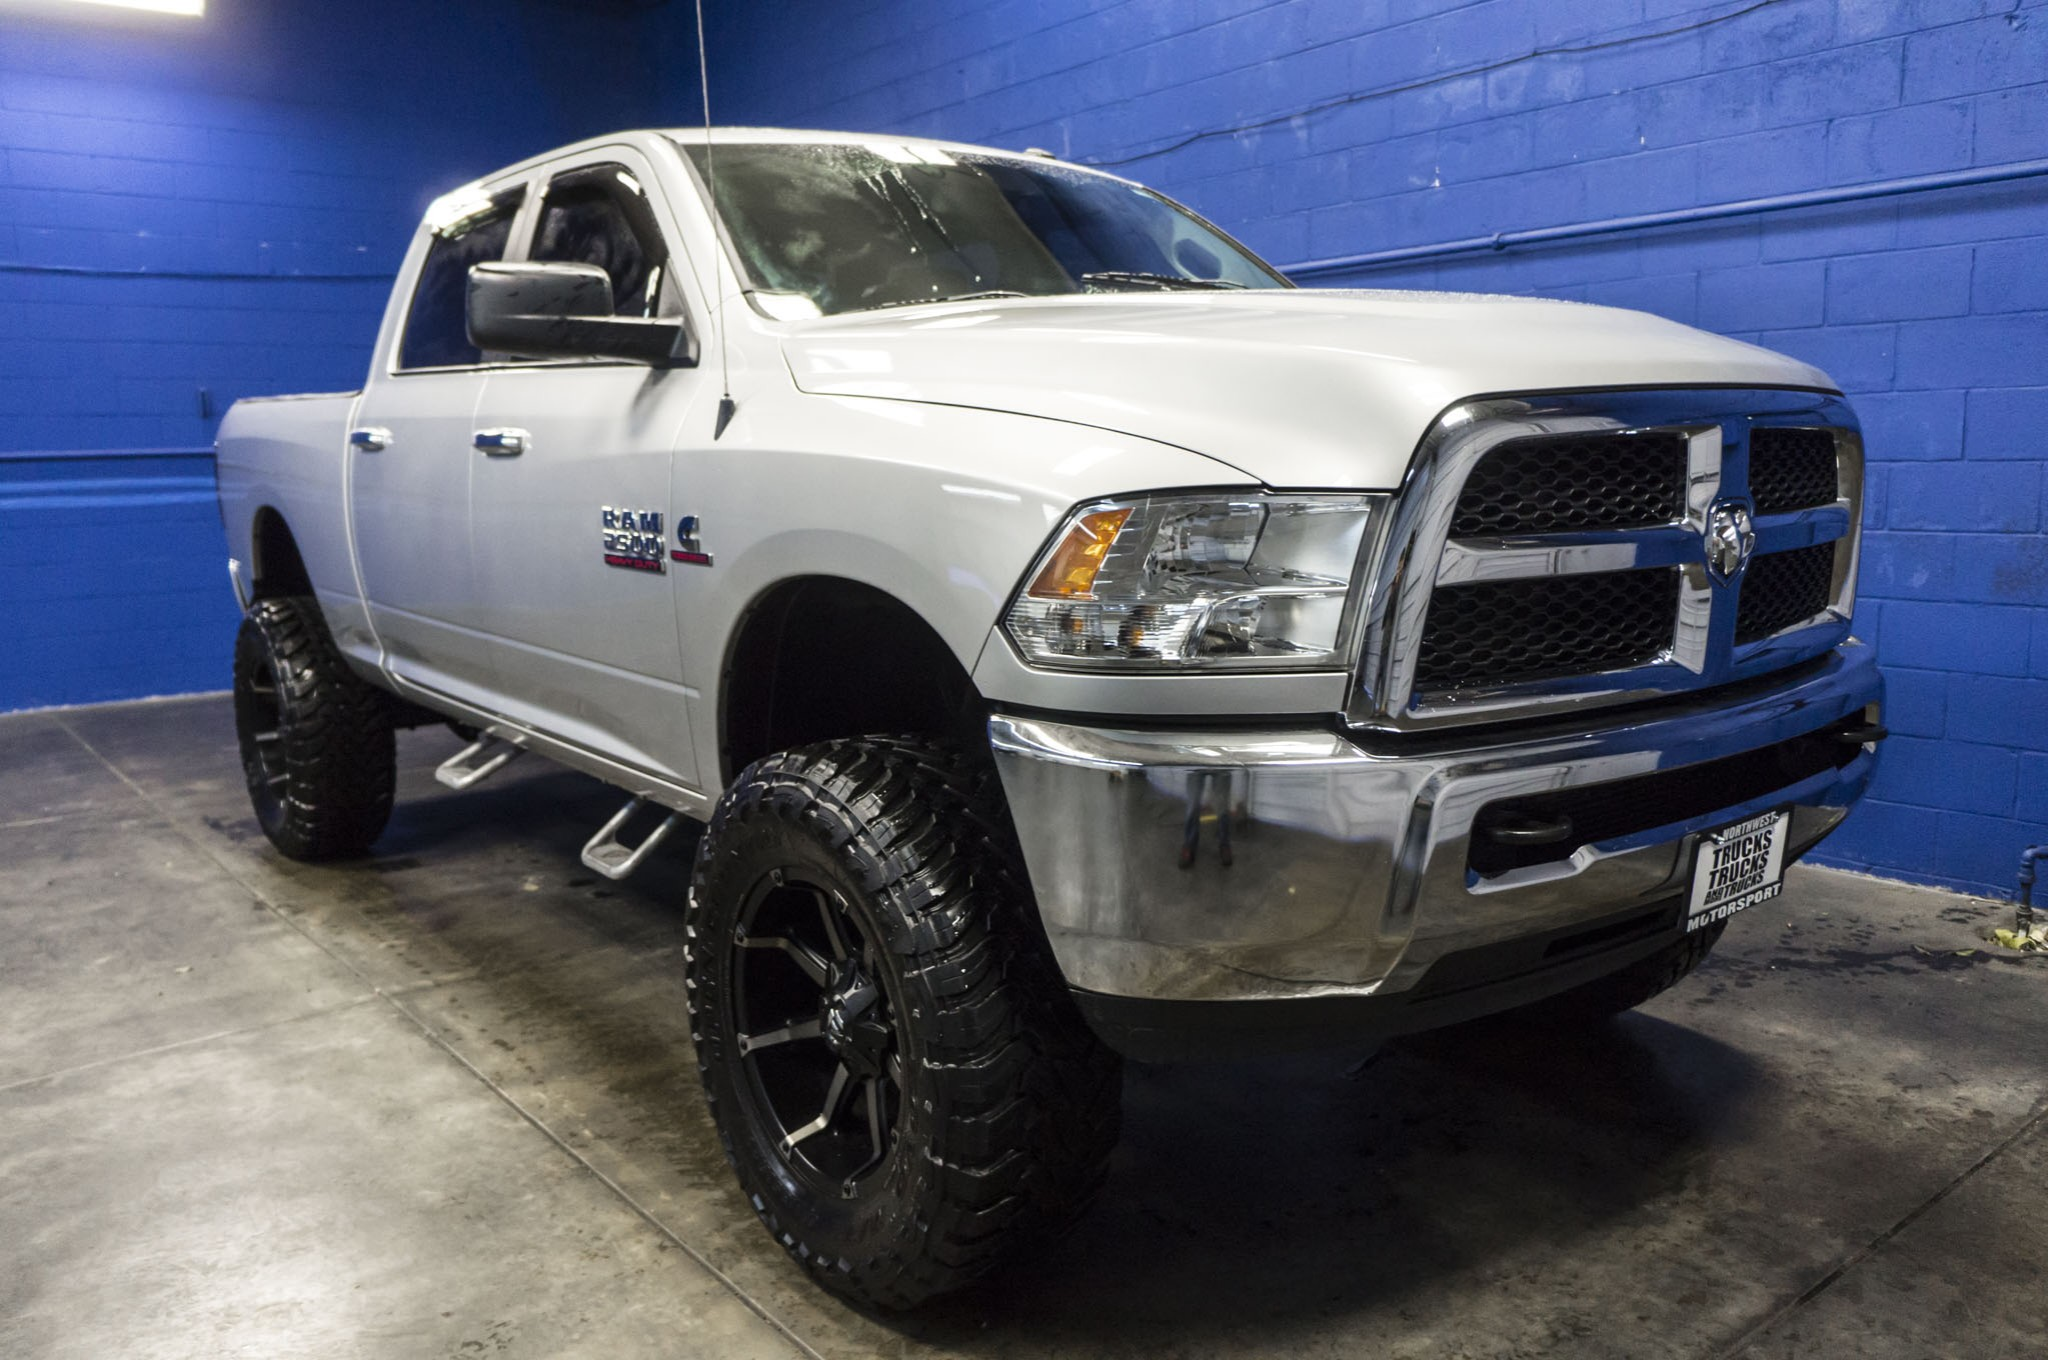 used lifted 2013 dodge ram 2500 slt 4x4 diesel truck for sale 35517. Black Bedroom Furniture Sets. Home Design Ideas